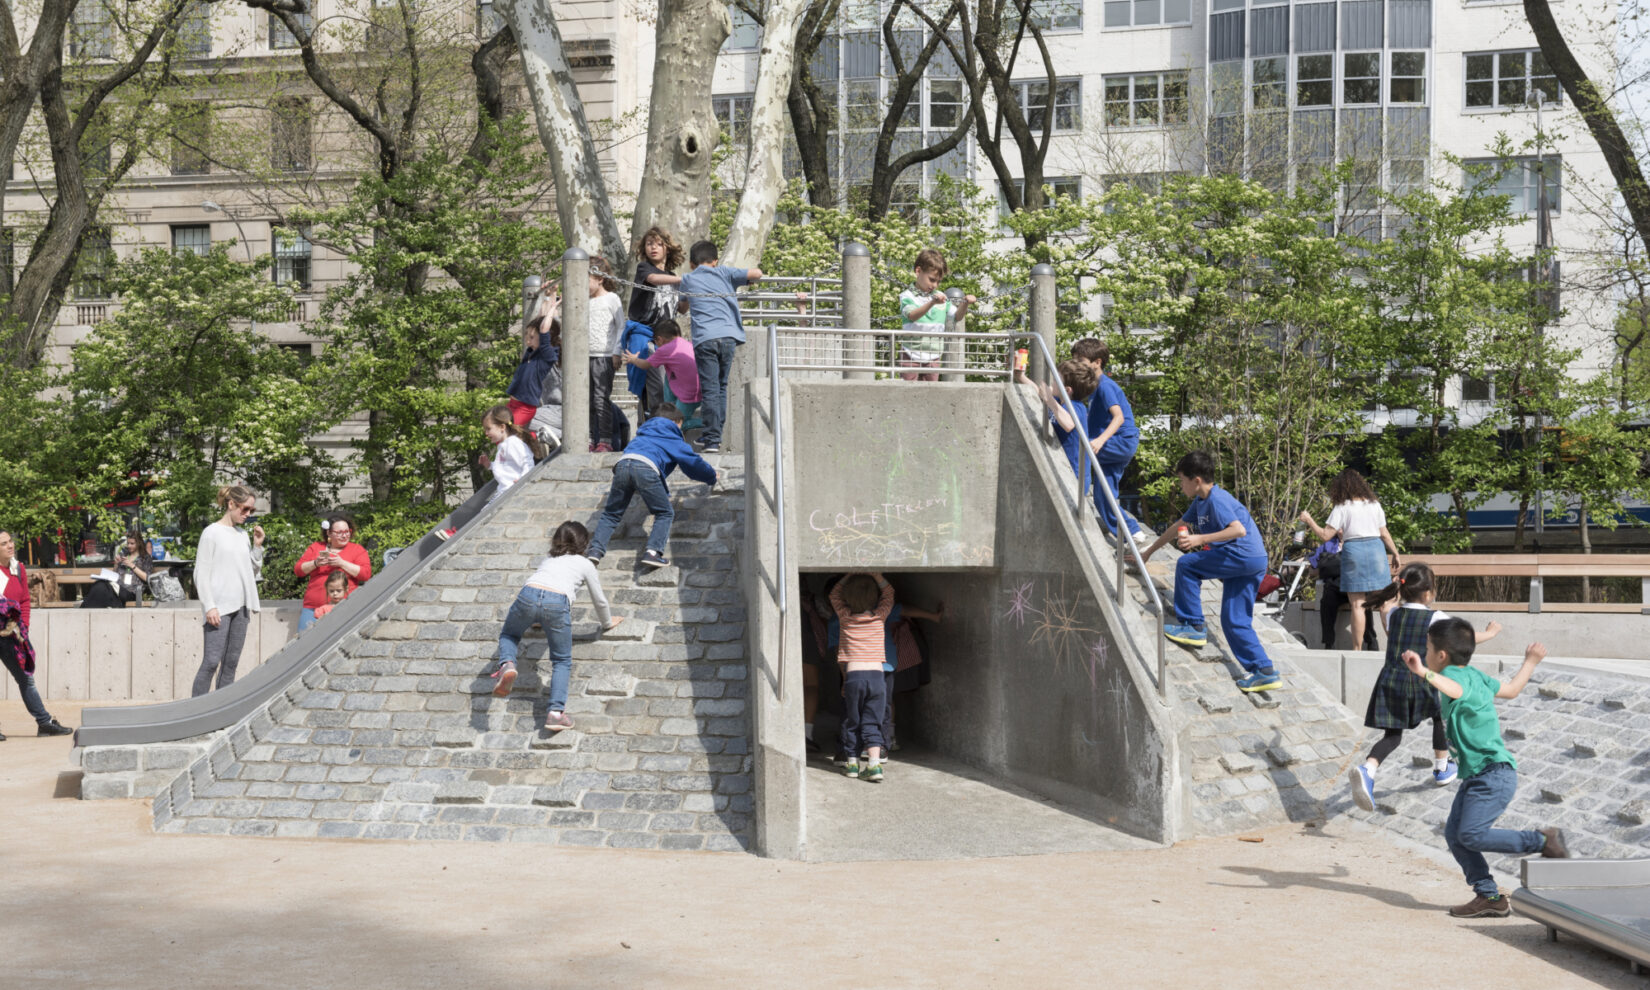 Kids clamber over, and walk under, the stone climbing apparatus in the playground.